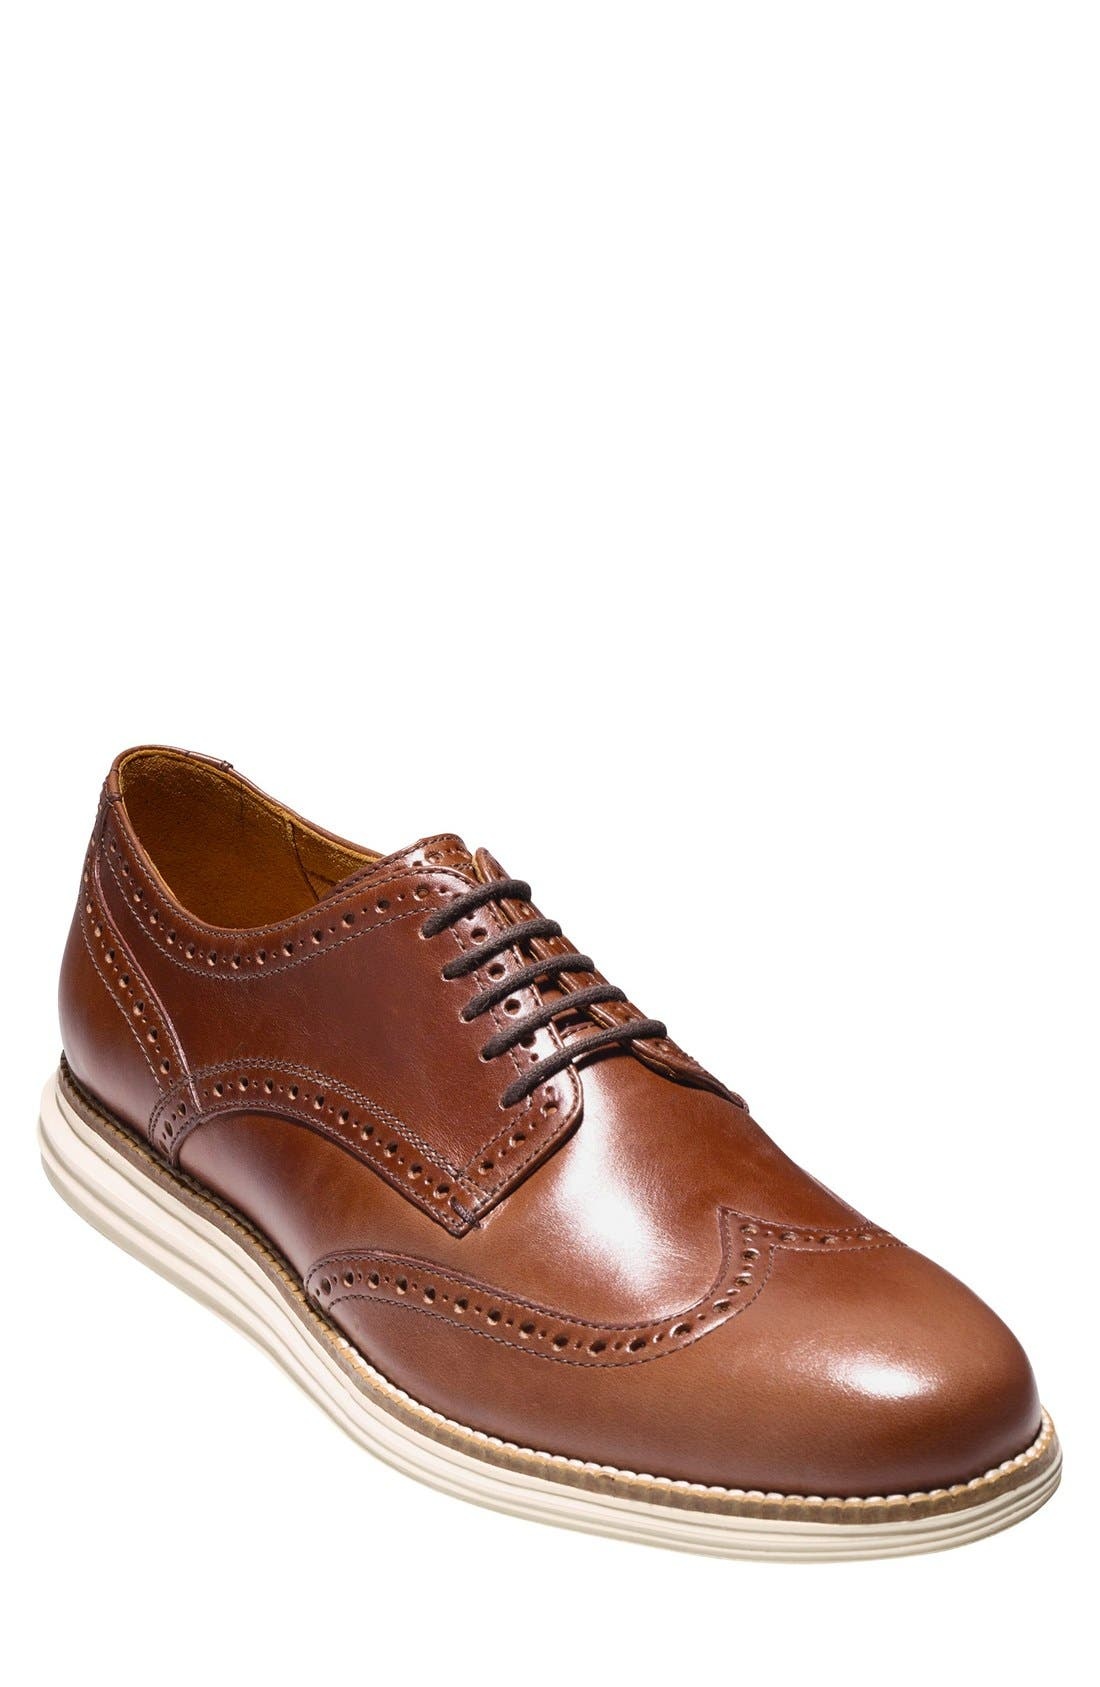 Main Image - Cole Haan 'Original Grand' Wingtip (Men)